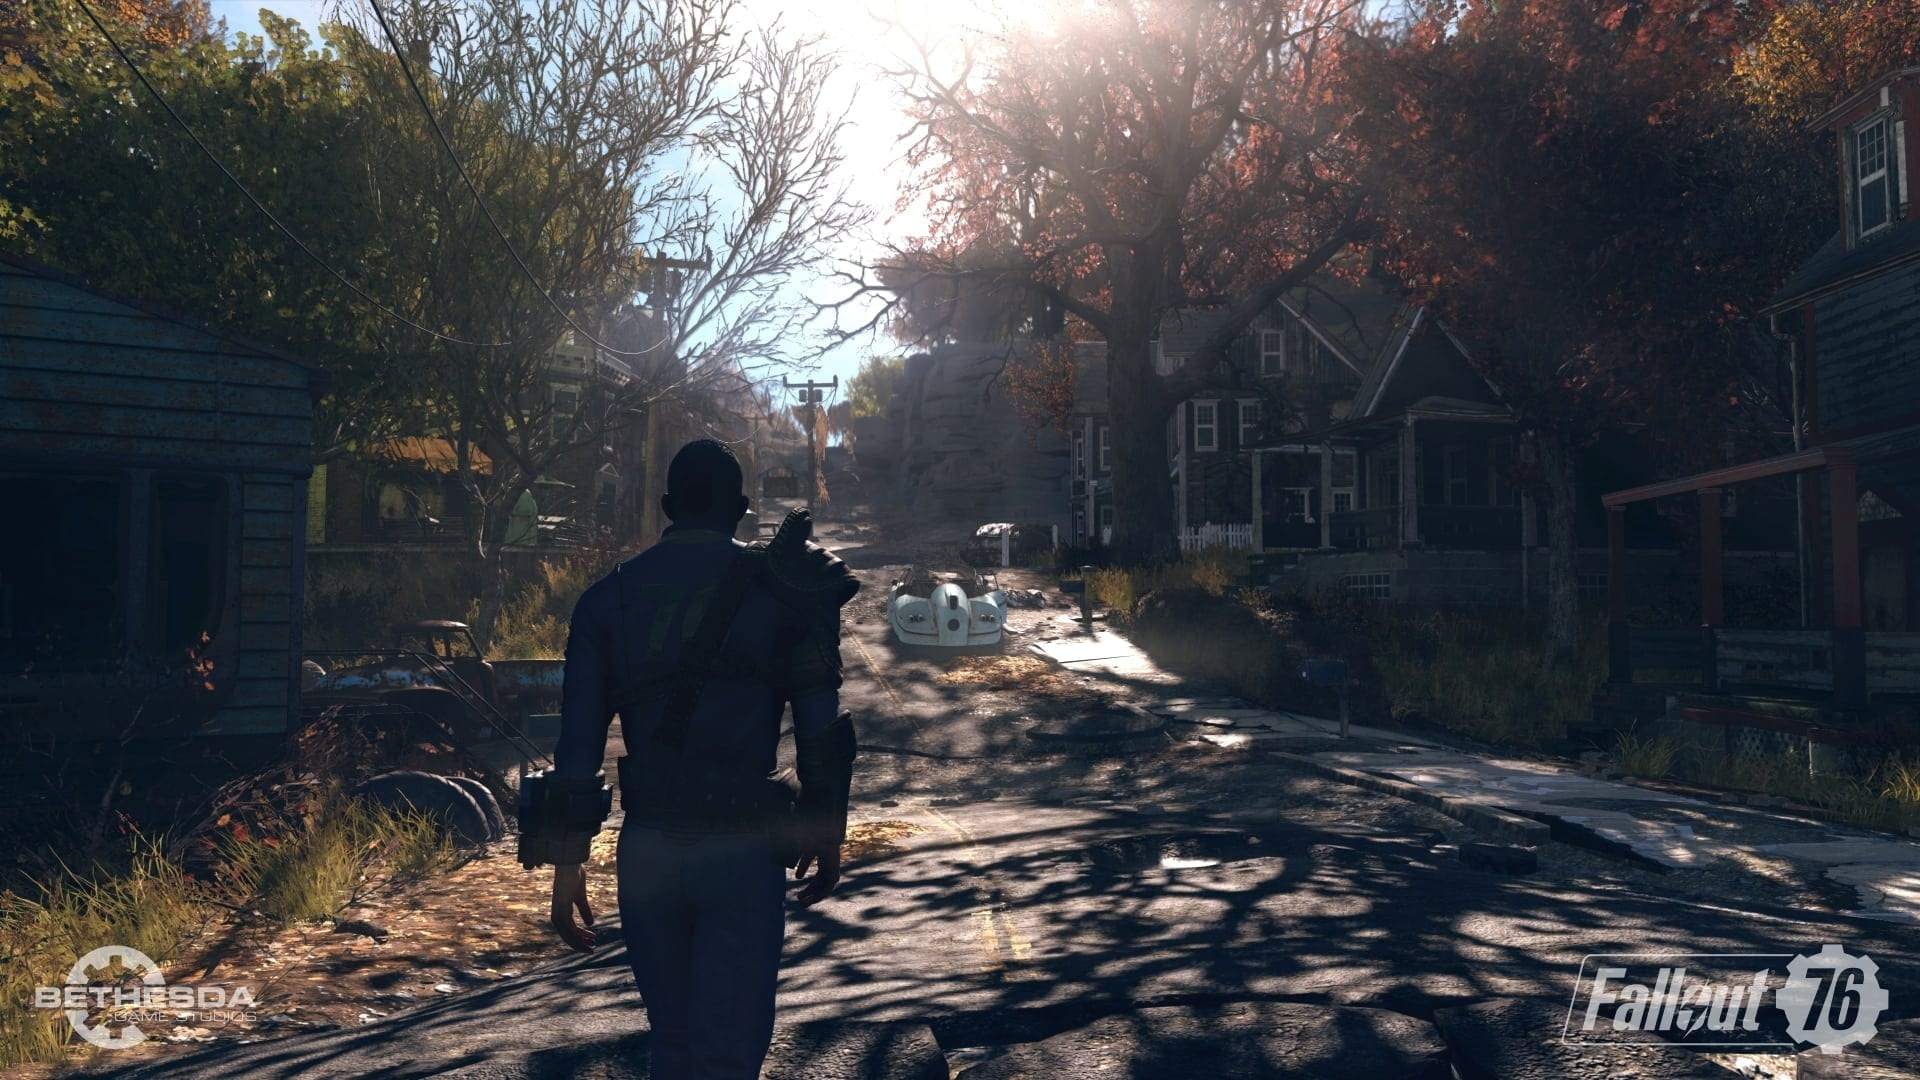 Fallout 76 Explore A Brave New World With Friends Later